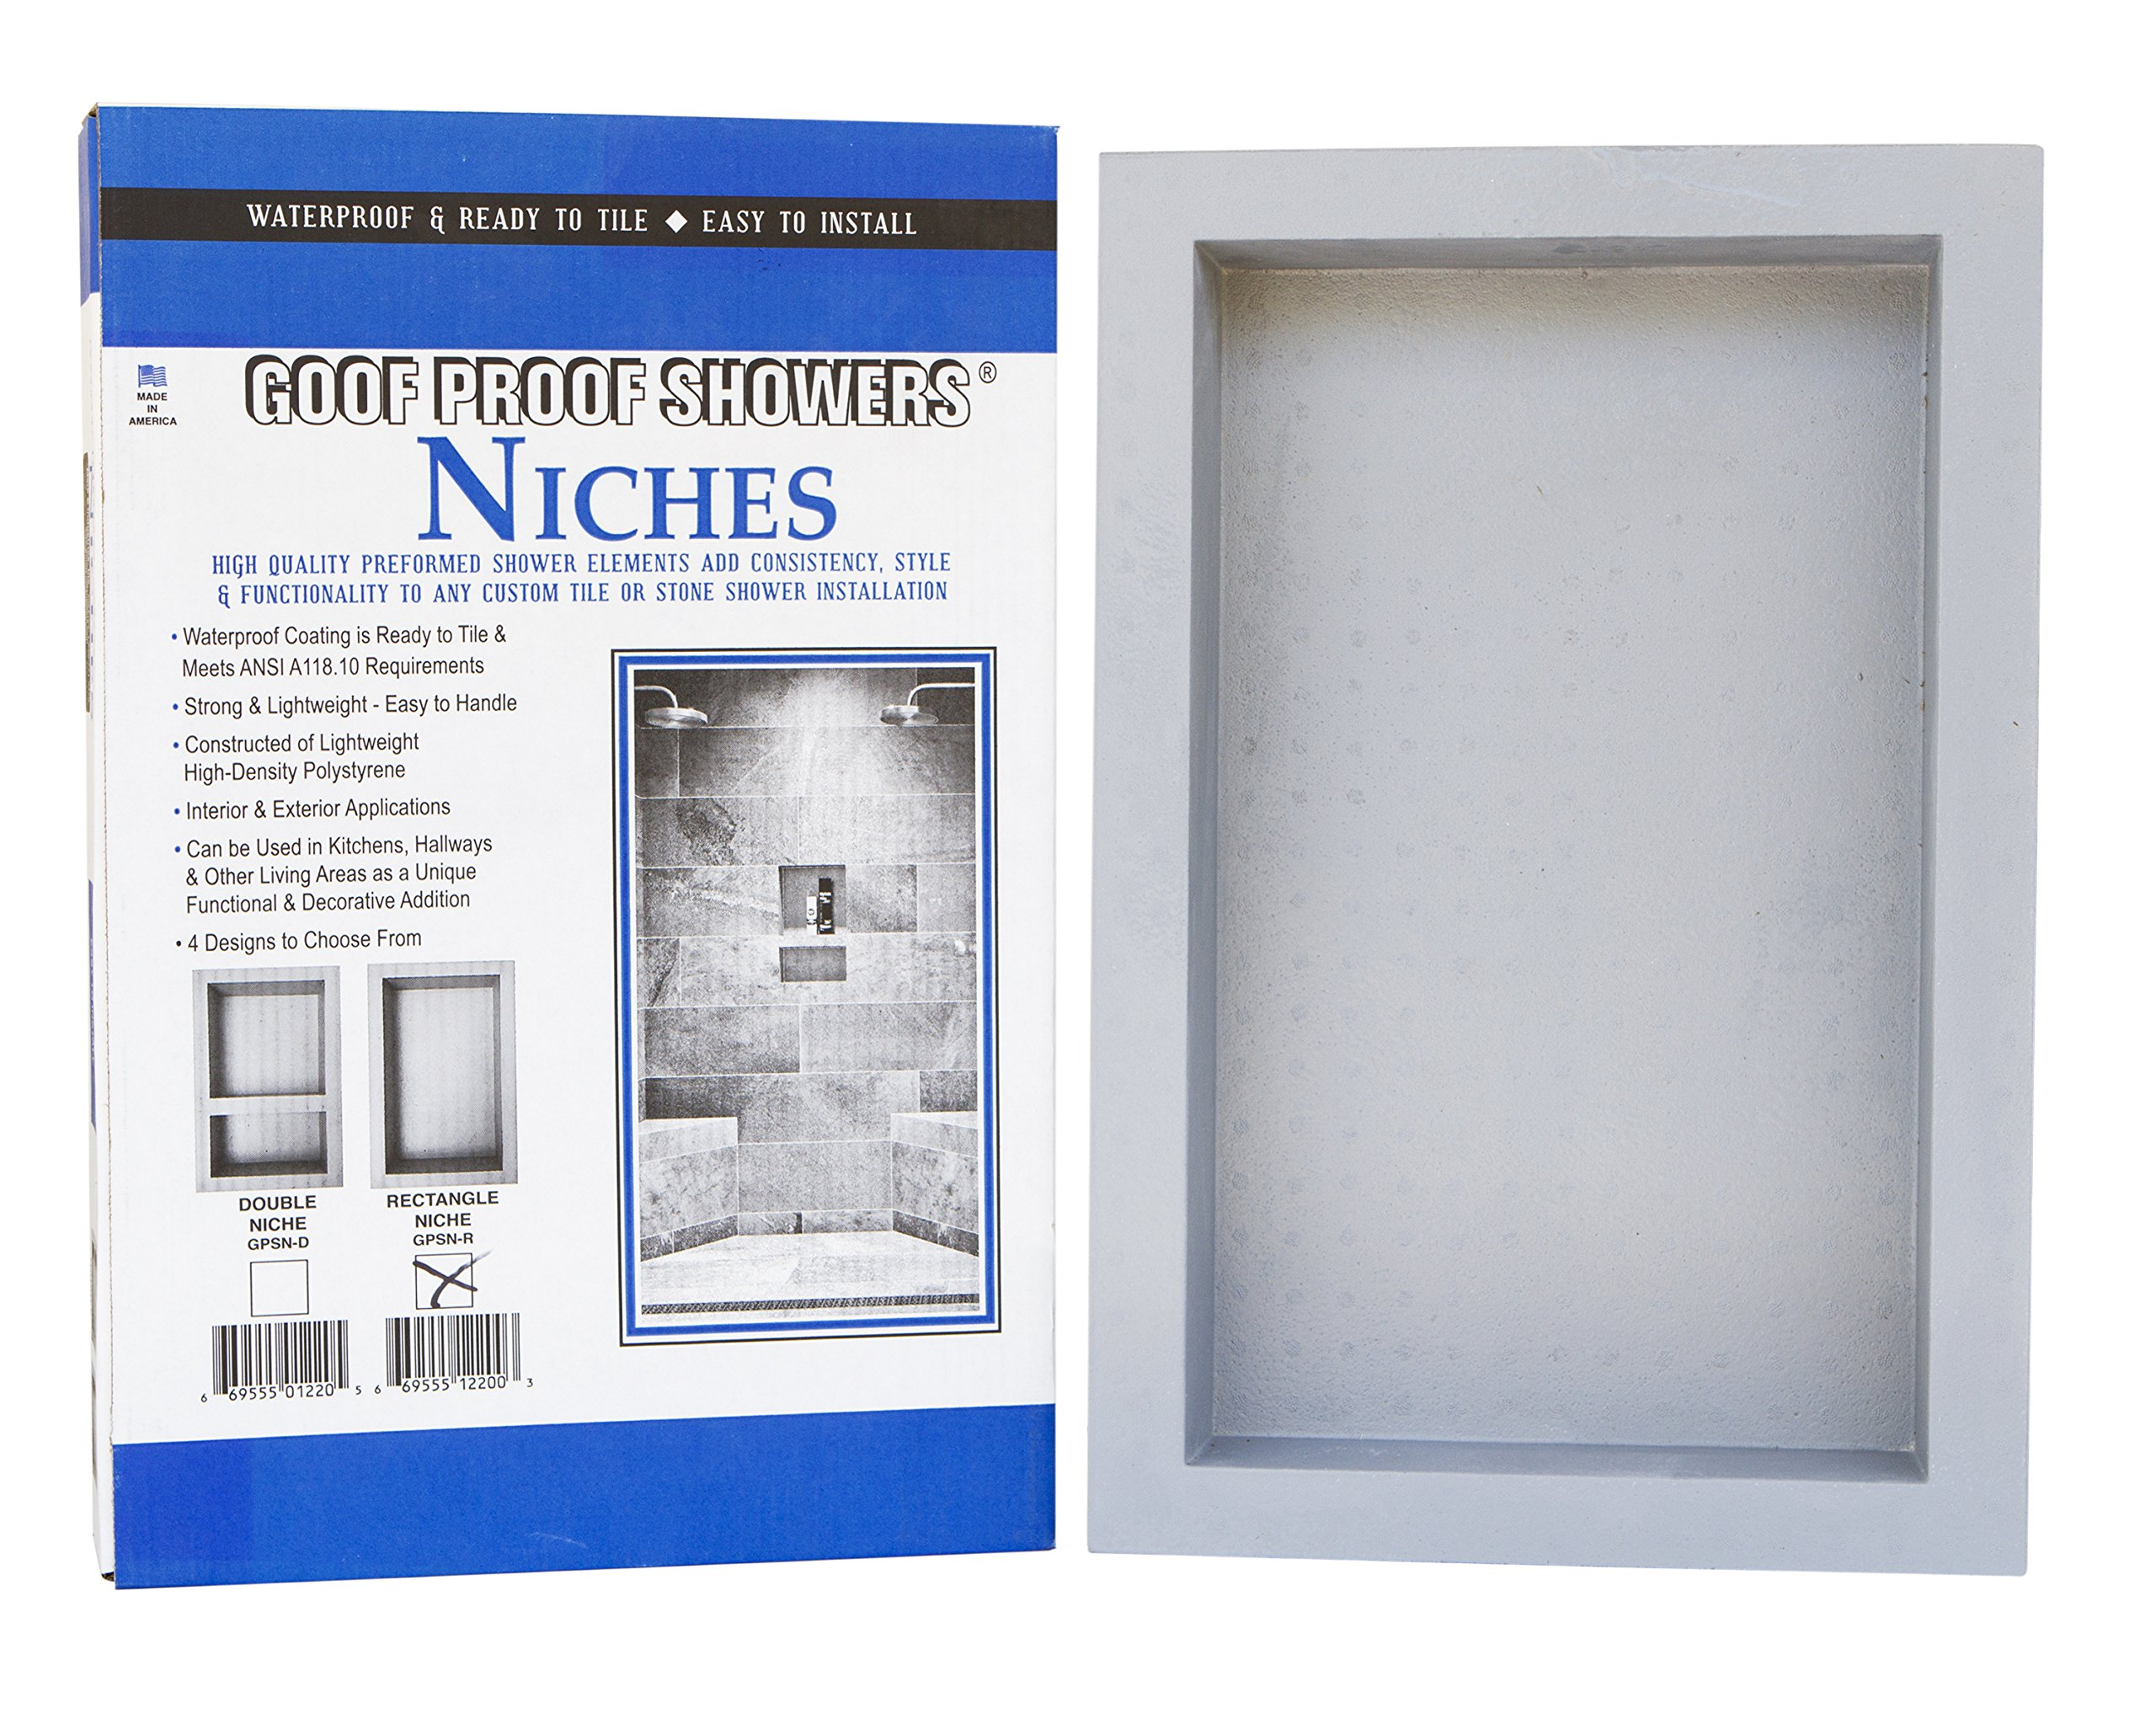 GOOF PROOF SHOWER GPSN-R Rectangle Niche 12x20, White